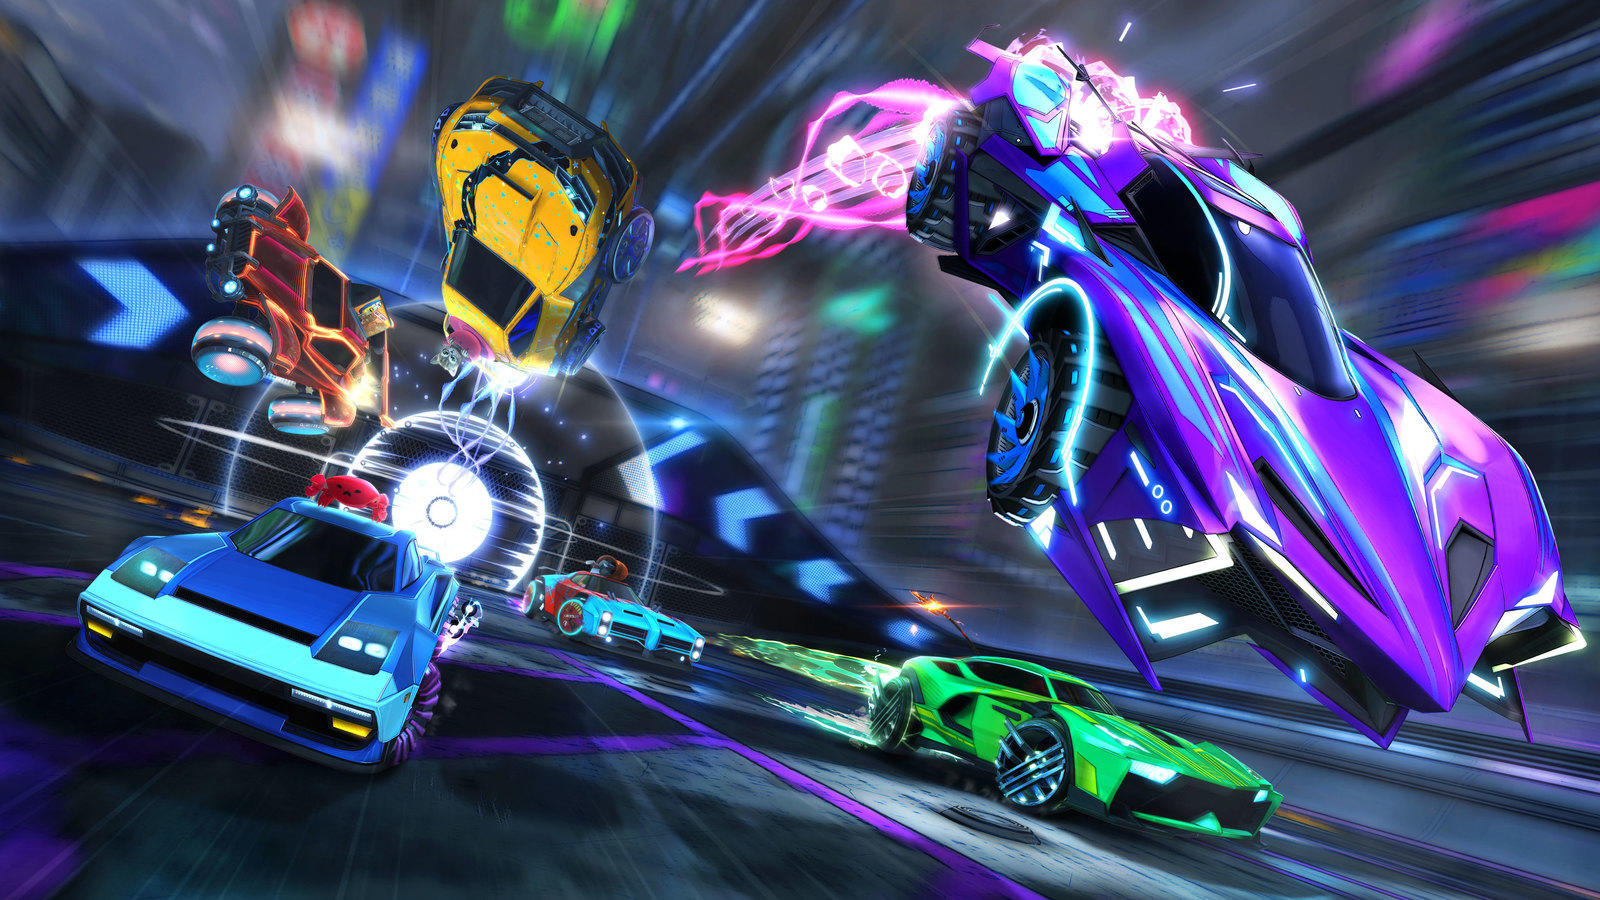 Rocket League Free To Play Release Date Revealed Early By Nintendo Dexerto